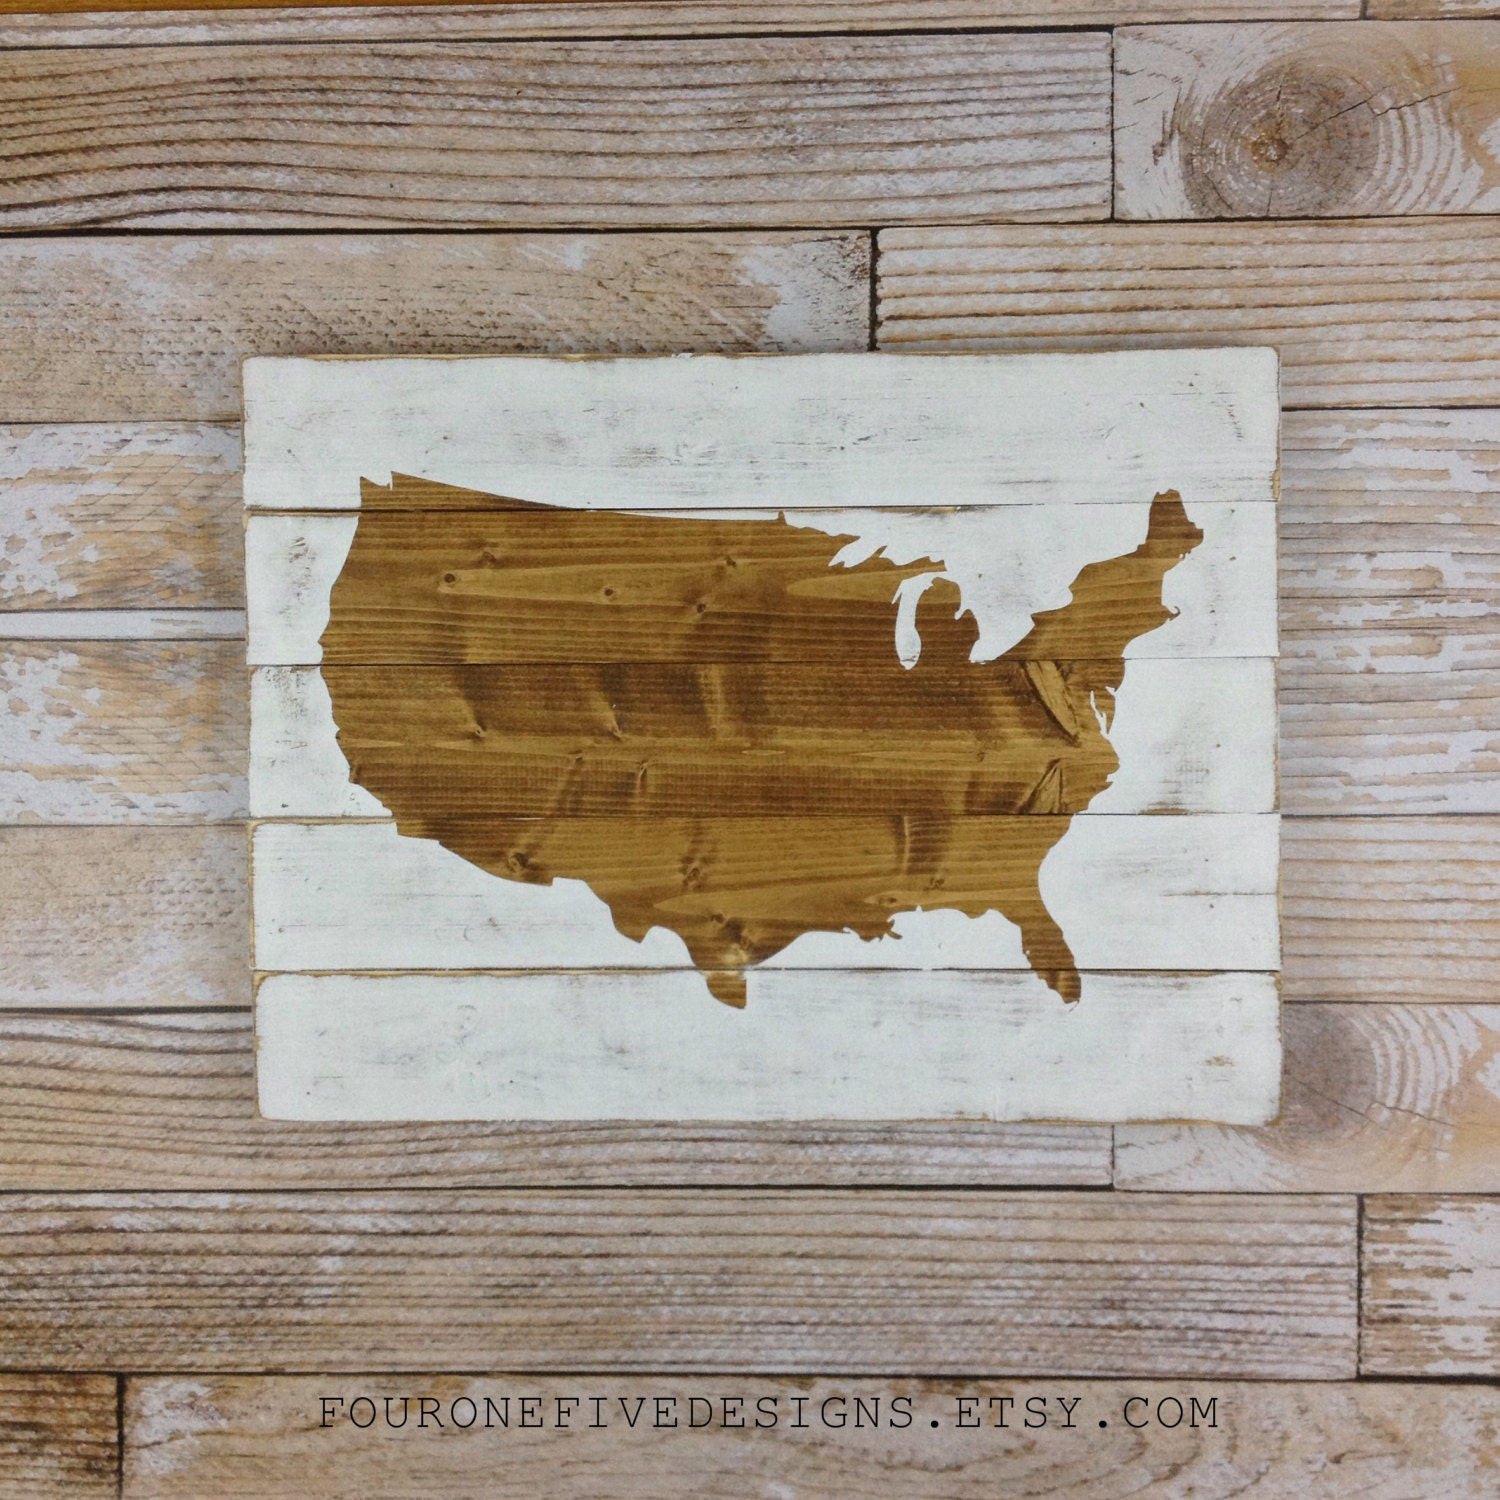 United states map wood plank sign home decor rustic art